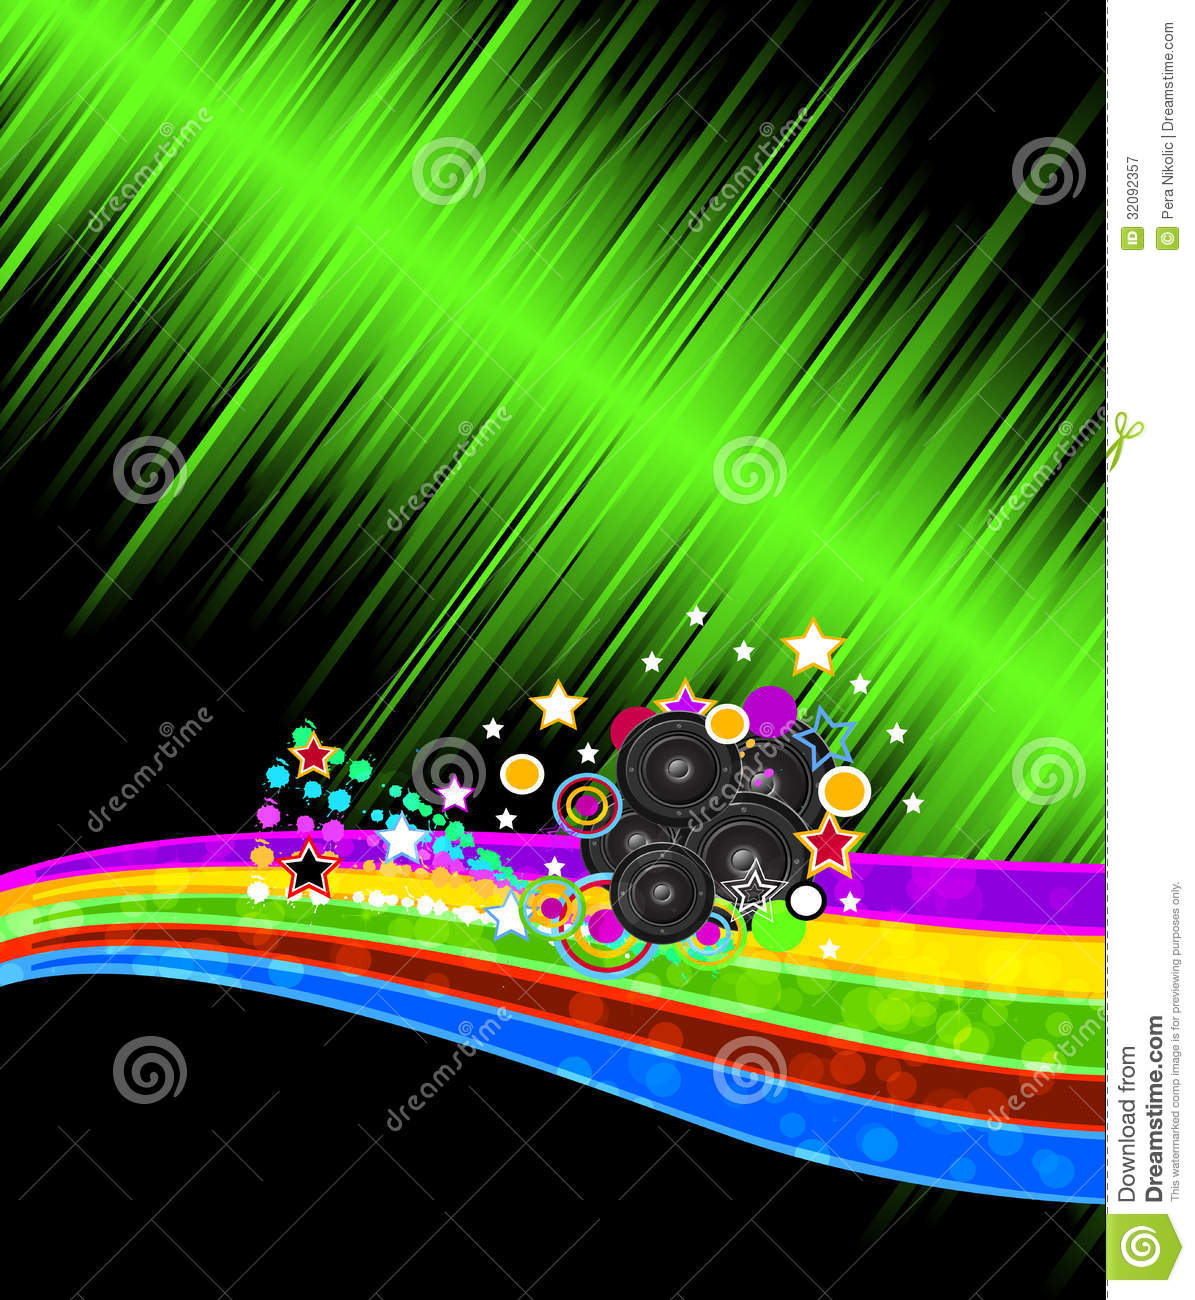 Abstract music disco flayer background for night events